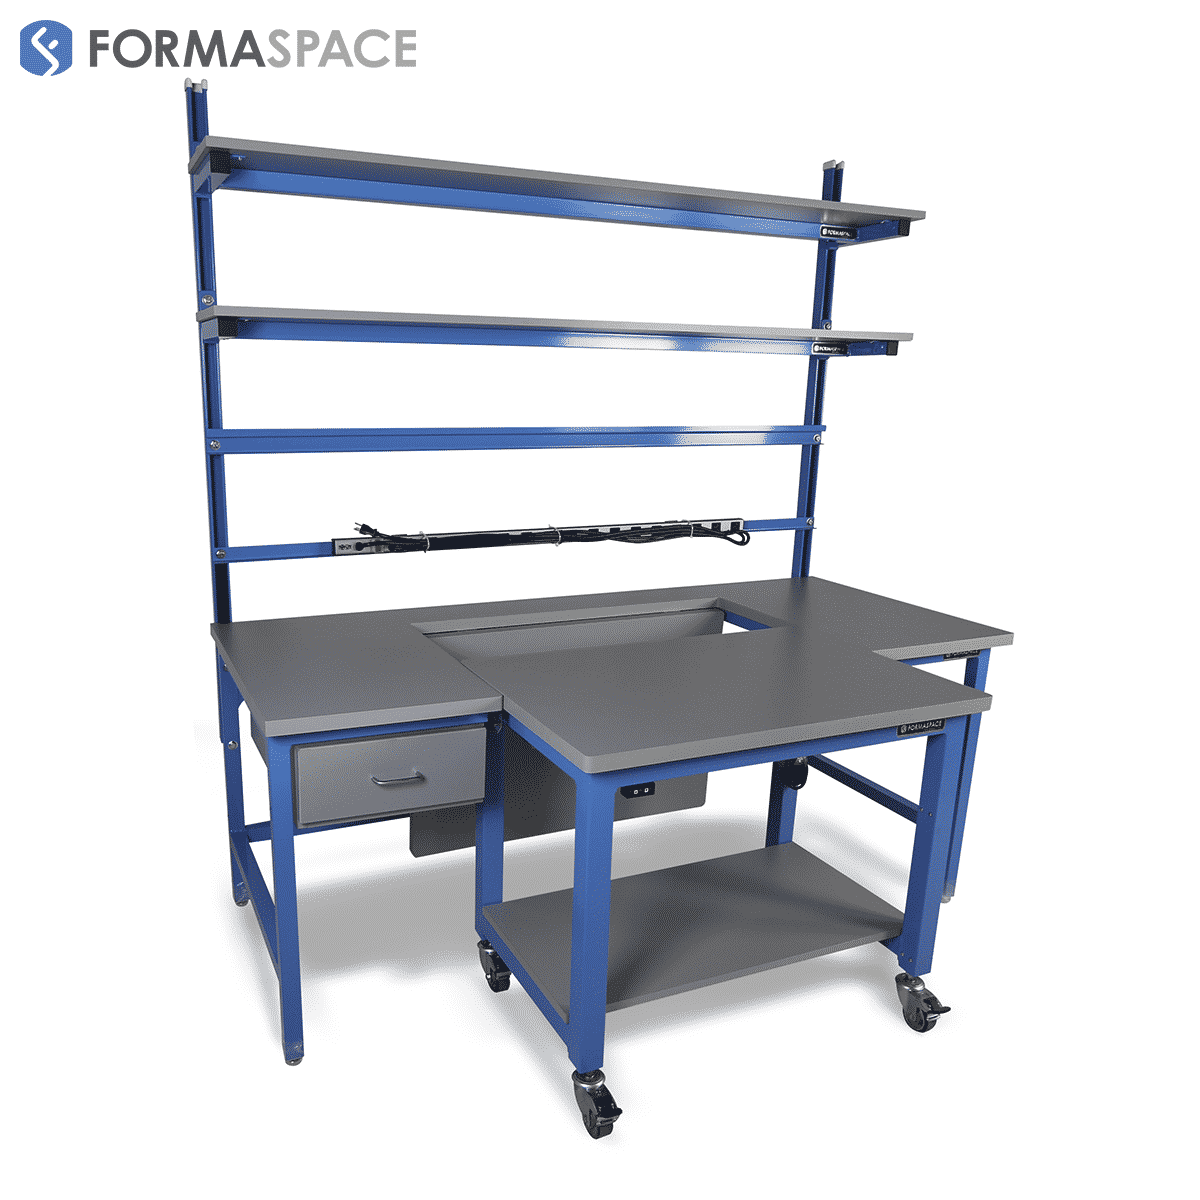 custom design tech workbench with mobile cart attachment